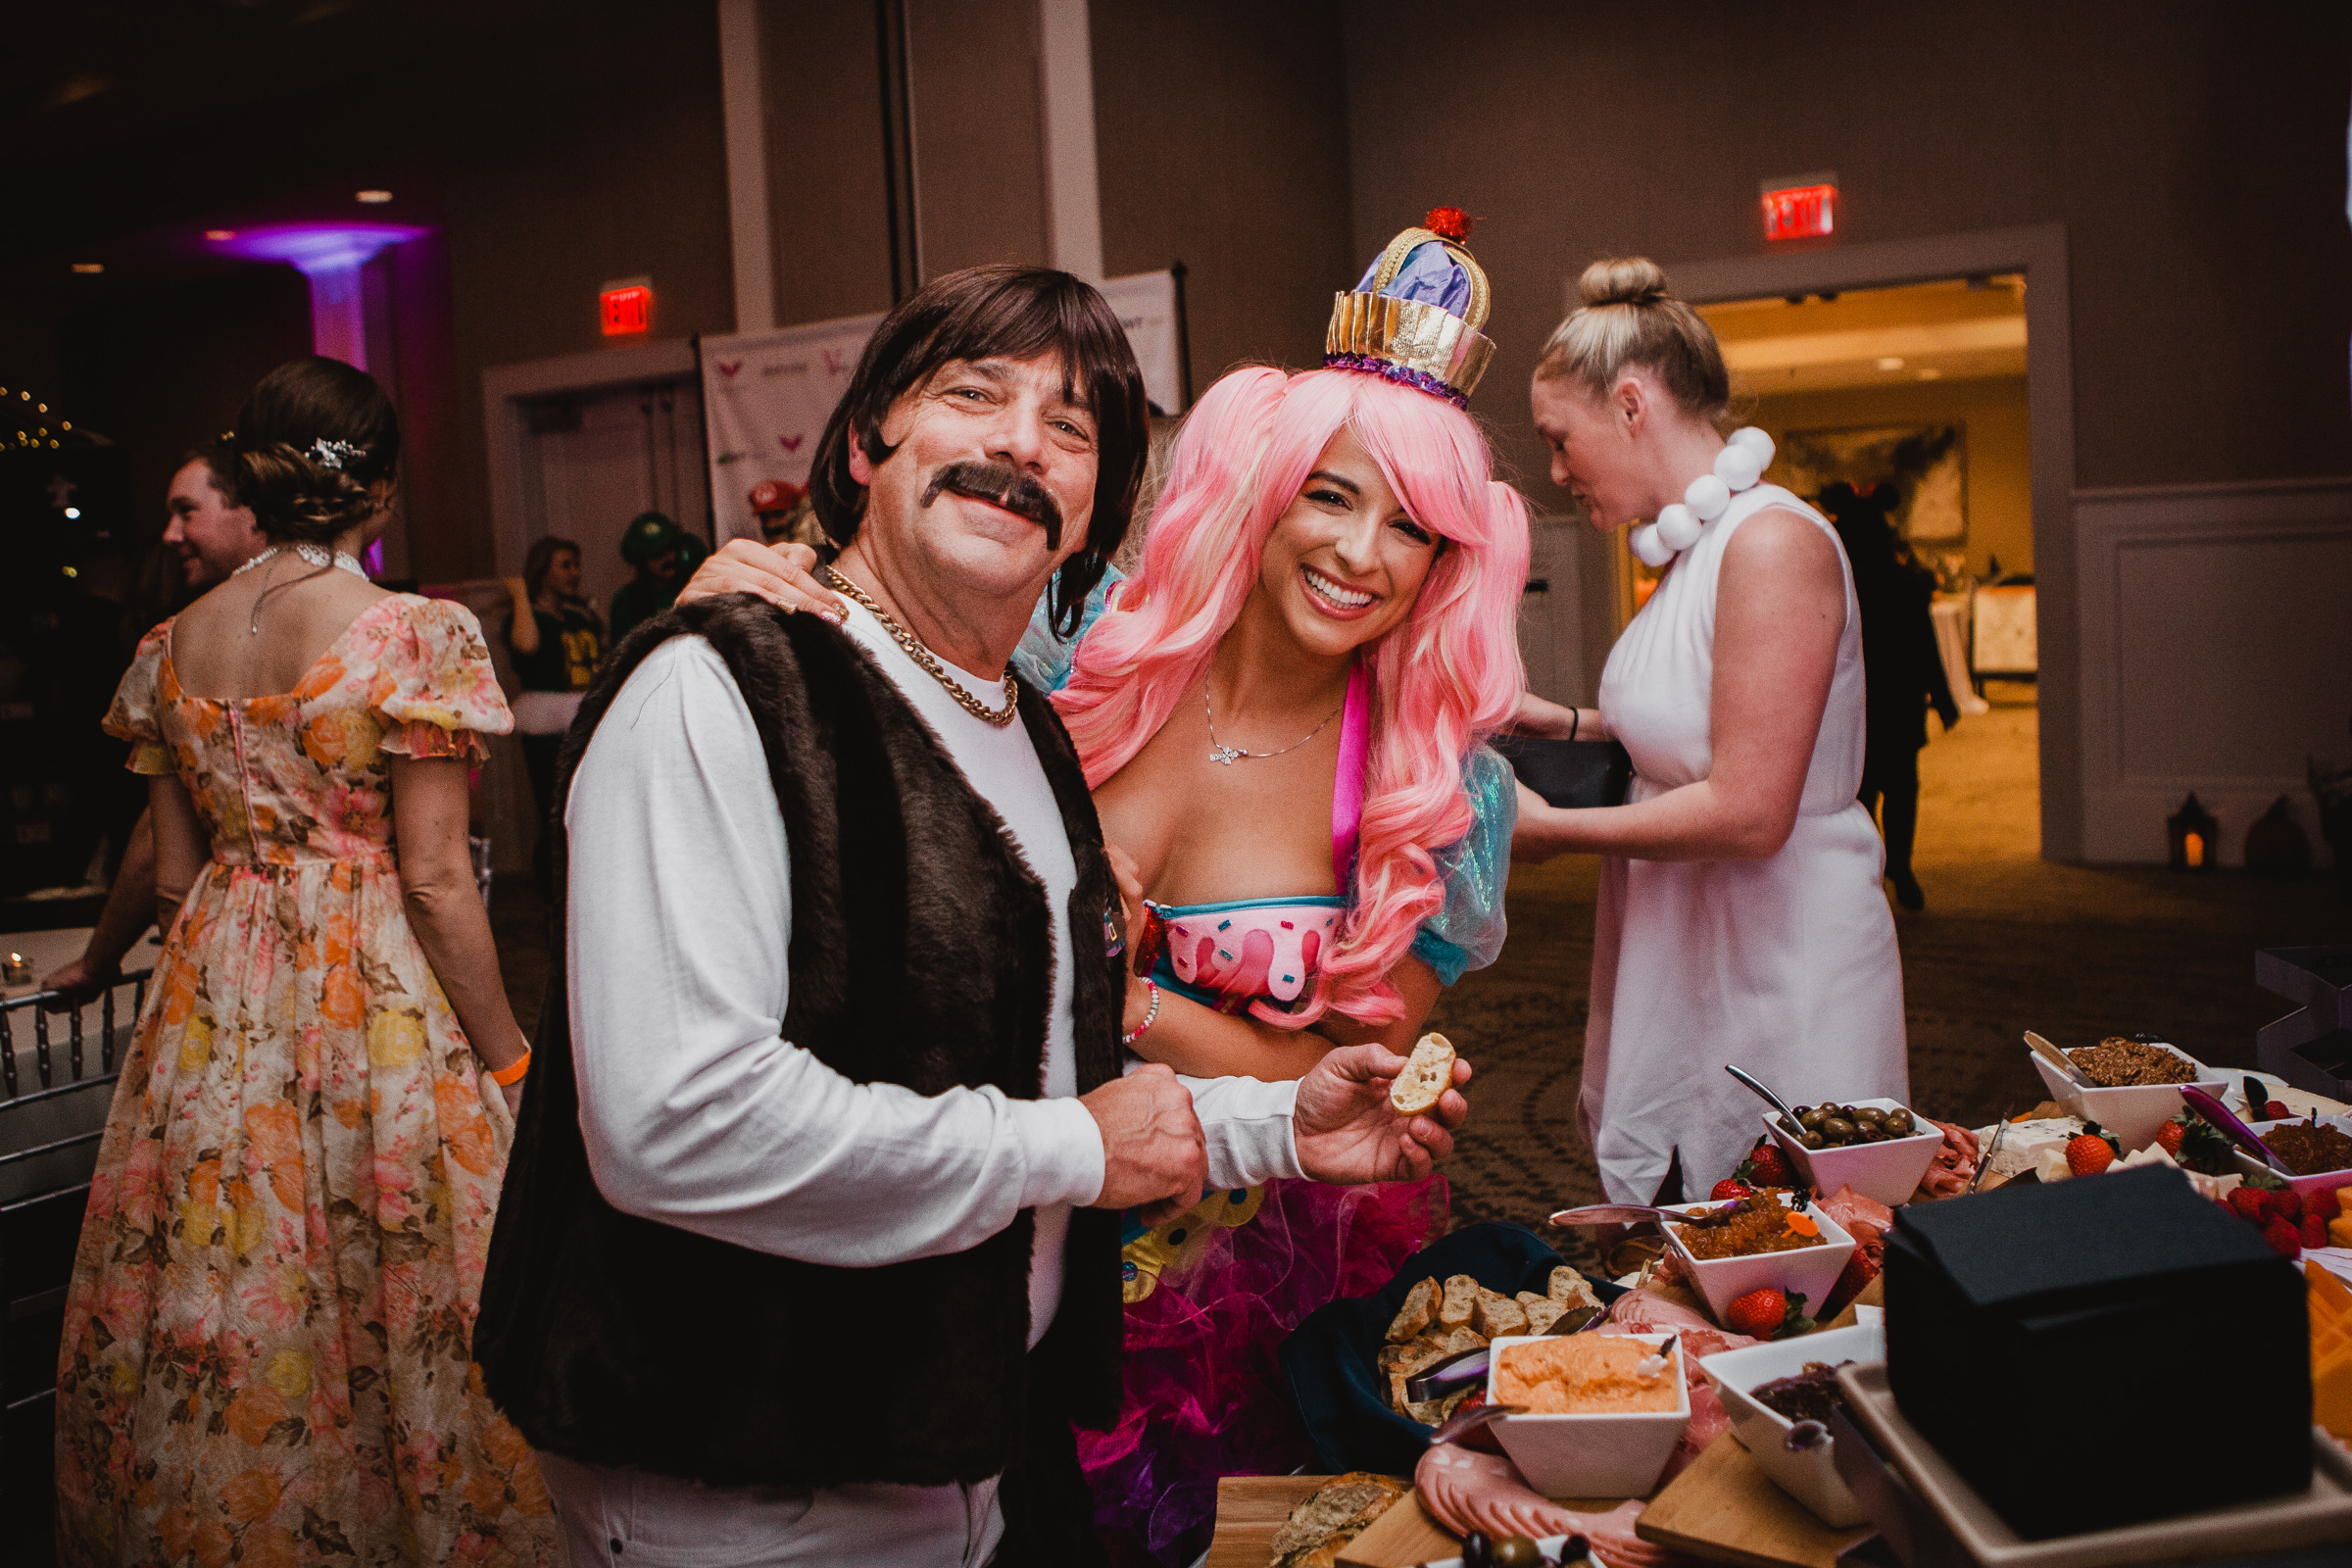 20181027_CostumesForACause_VVF_Event-8504.jpg